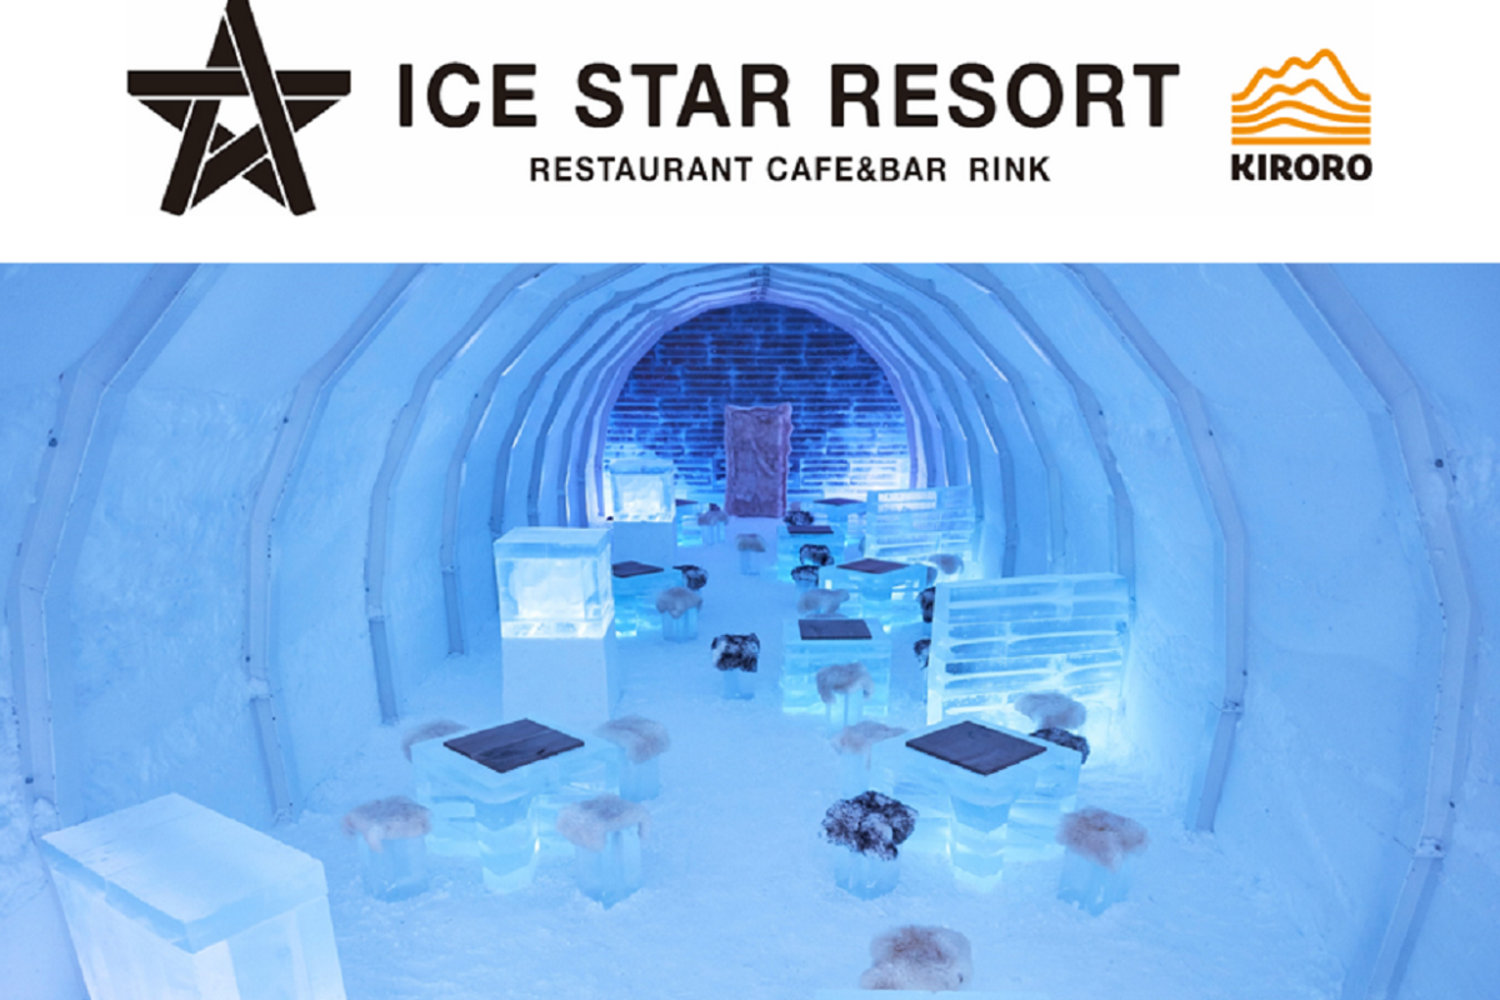 Ice Star Resort KIRORO 「キロロリゾート」